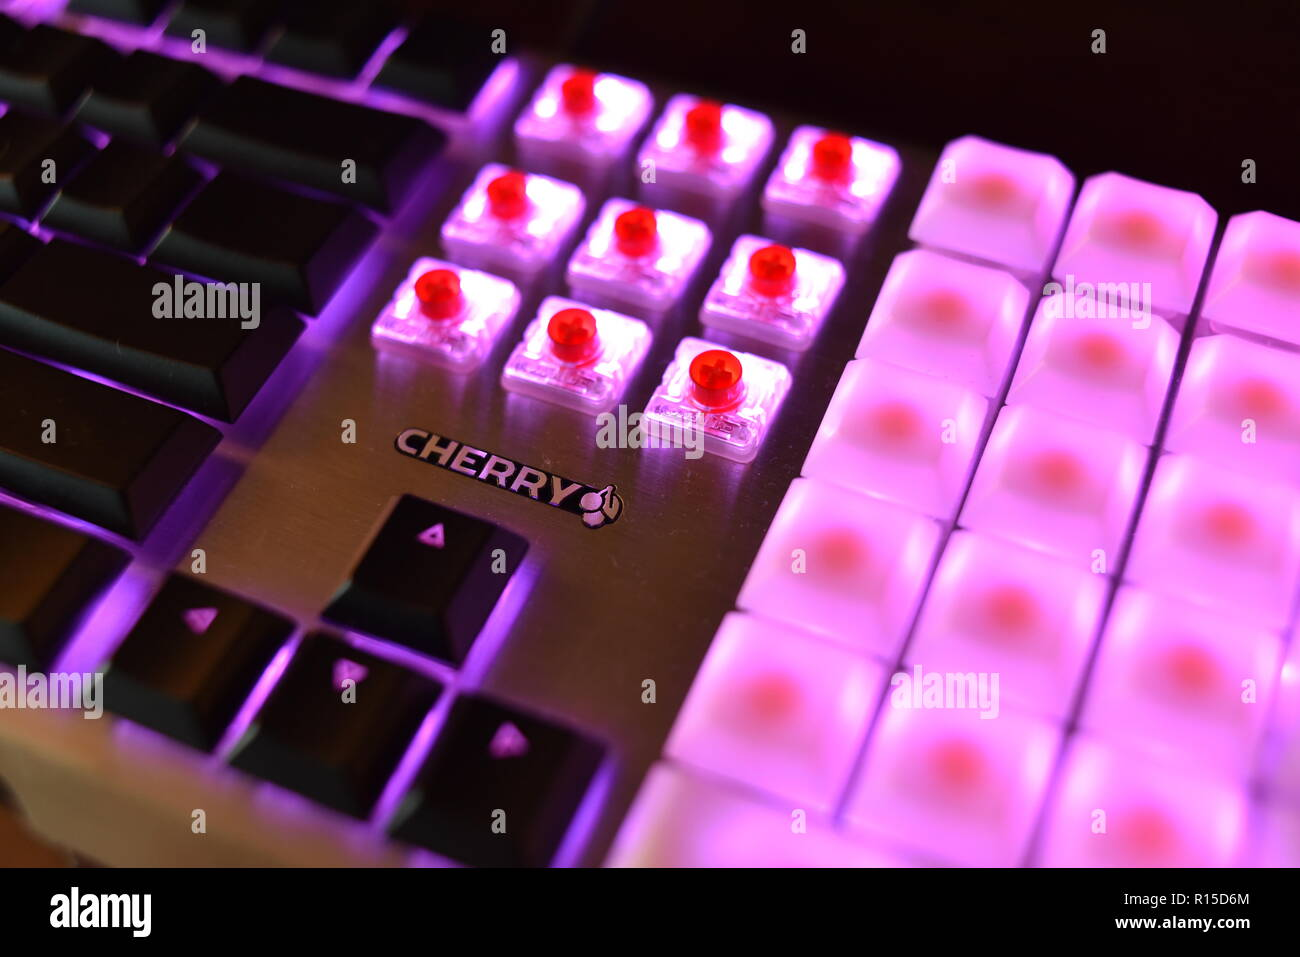 Bilder Mit Hintergrundbeleuchtung Led Backlit Stockfotos Led Backlit Bilder Alamy